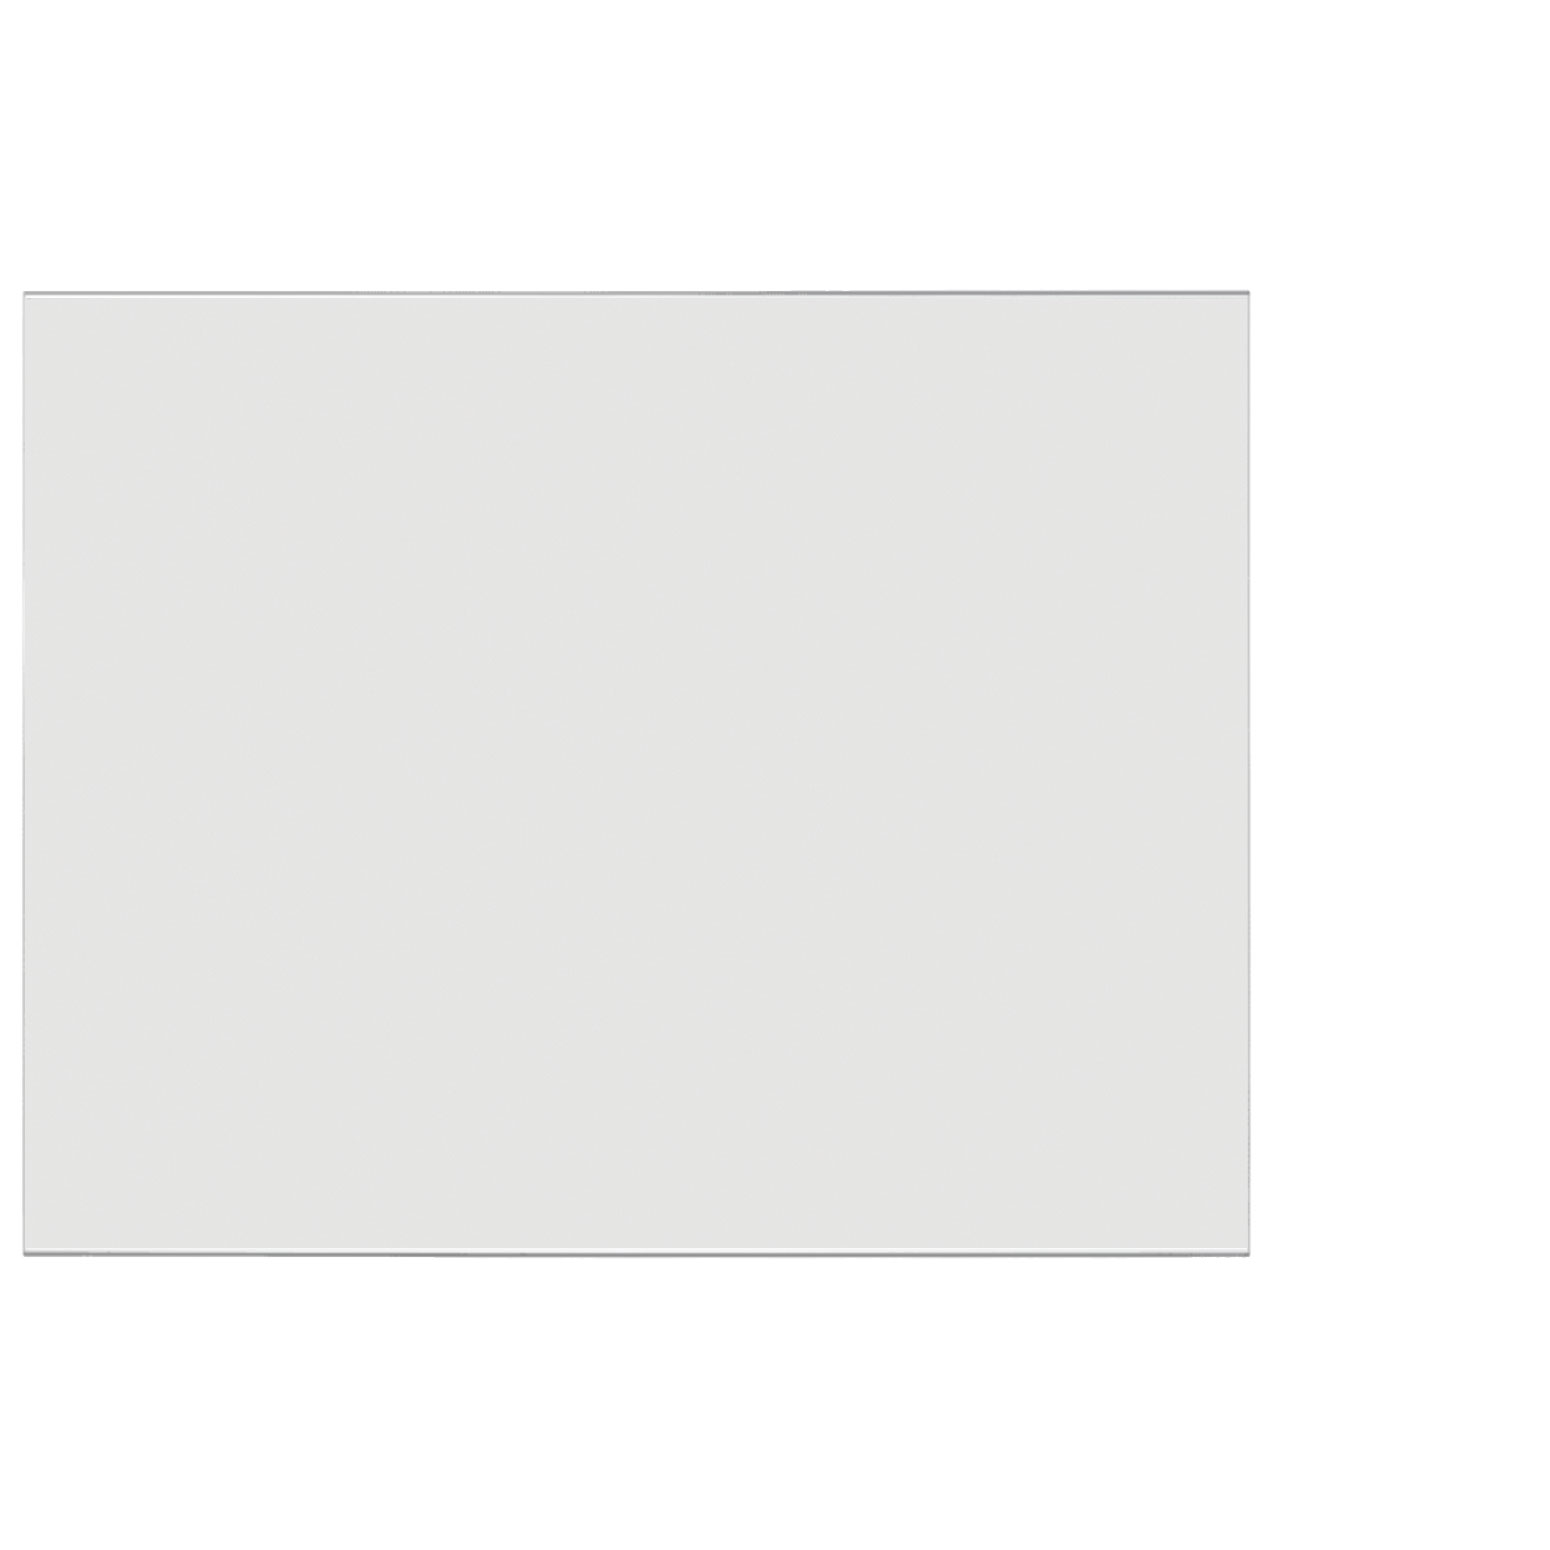 Frosted Acrylic Screen with Square Edges – 60″W x 30″H